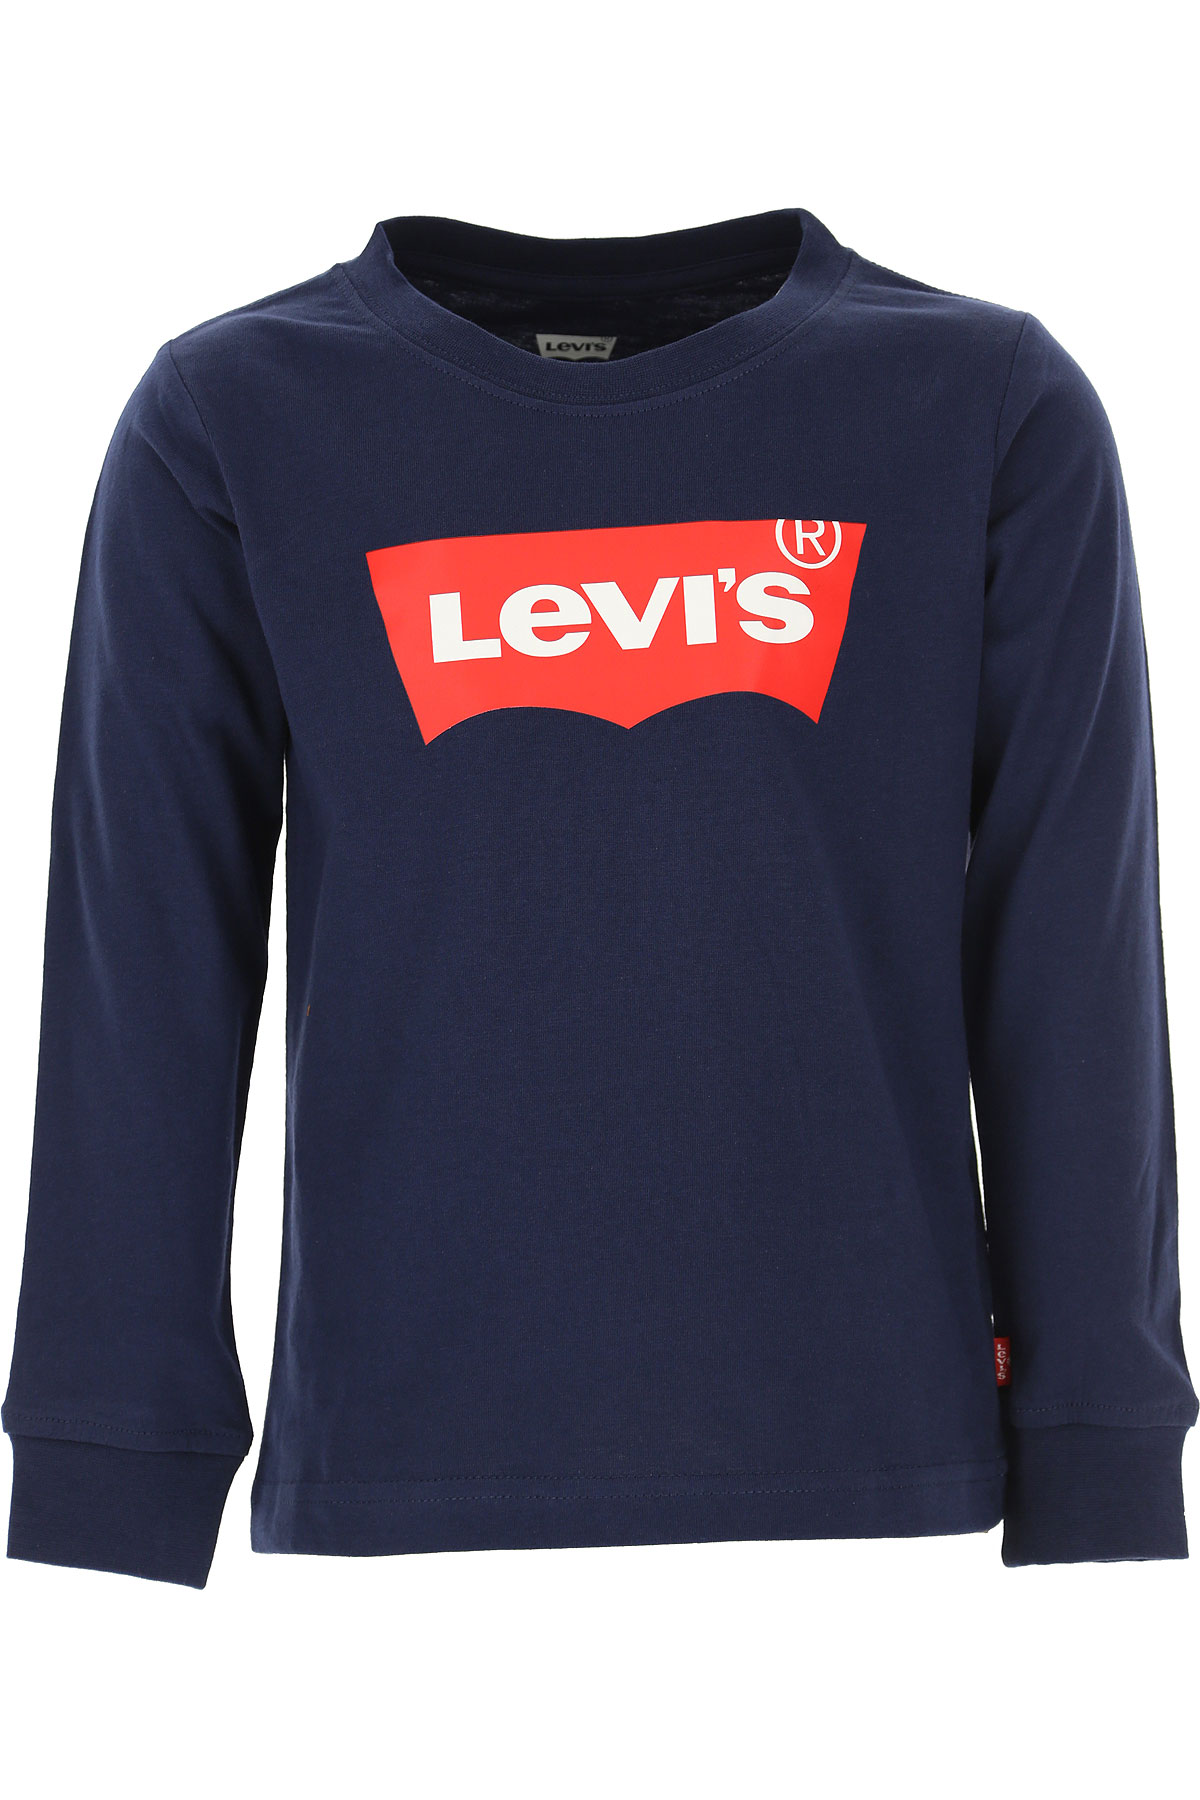 Levis Kids T-Shirt for Boys On Sale, navy, Cotton, 2019, 14Y 4Y